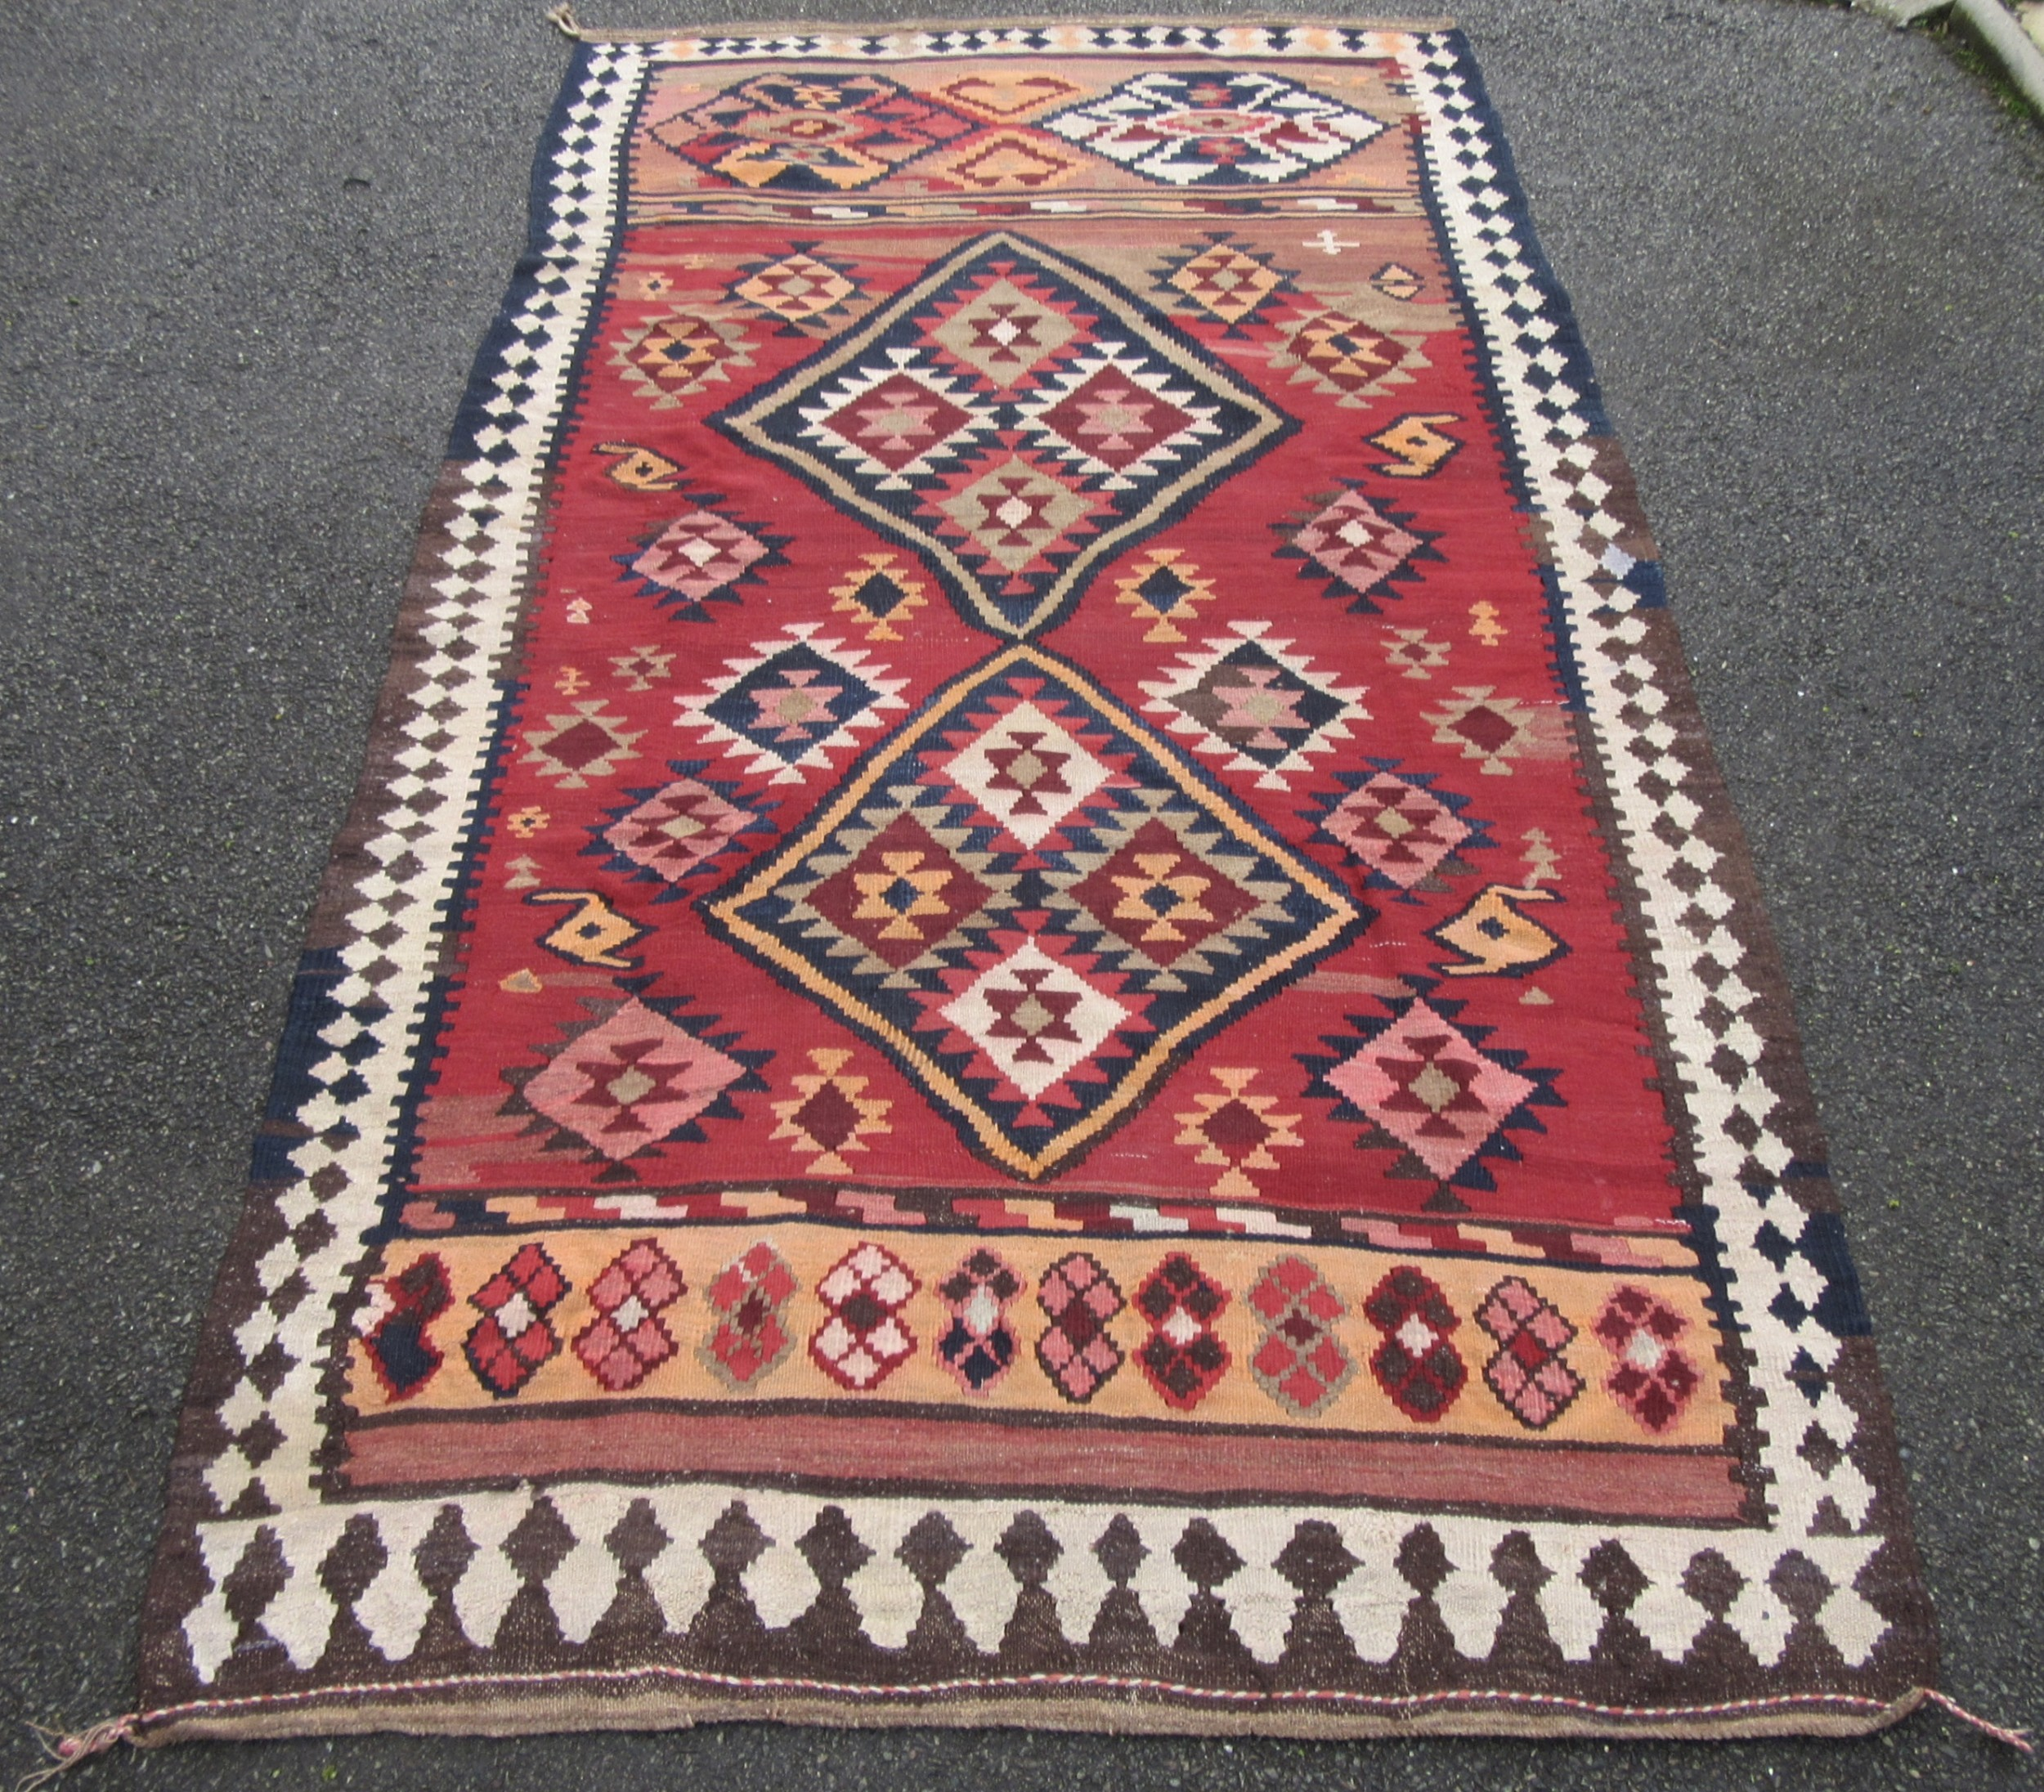 antique south west persian qashqai kilim kelim carpet rug all woollen weave with soft colours